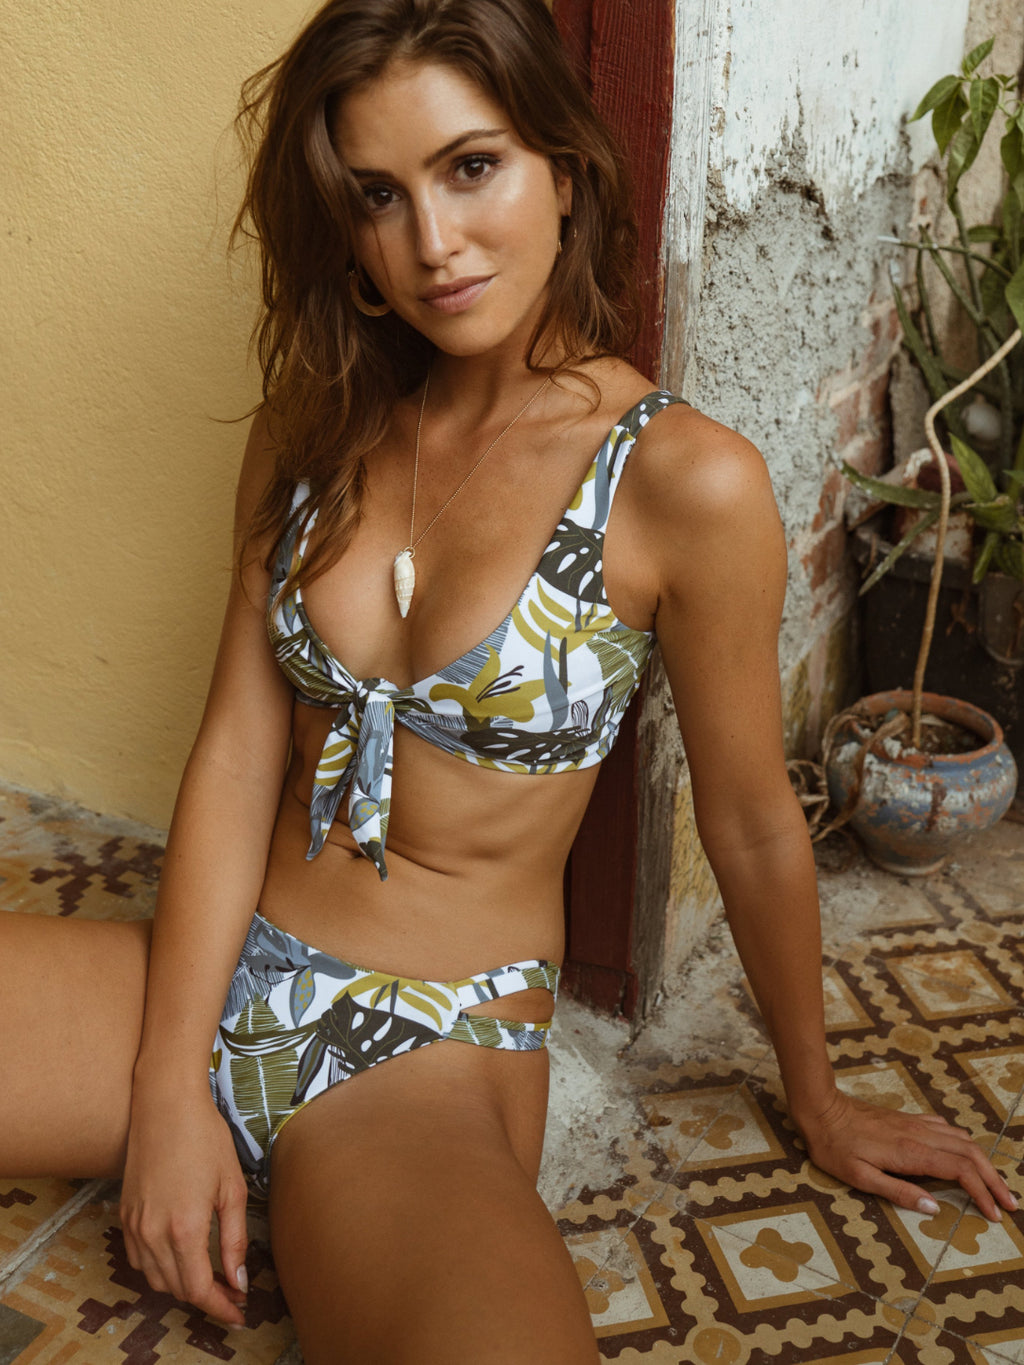 This bikini top features a front tie and is reversible. This bikini top has a palm print that is bright green and blue.